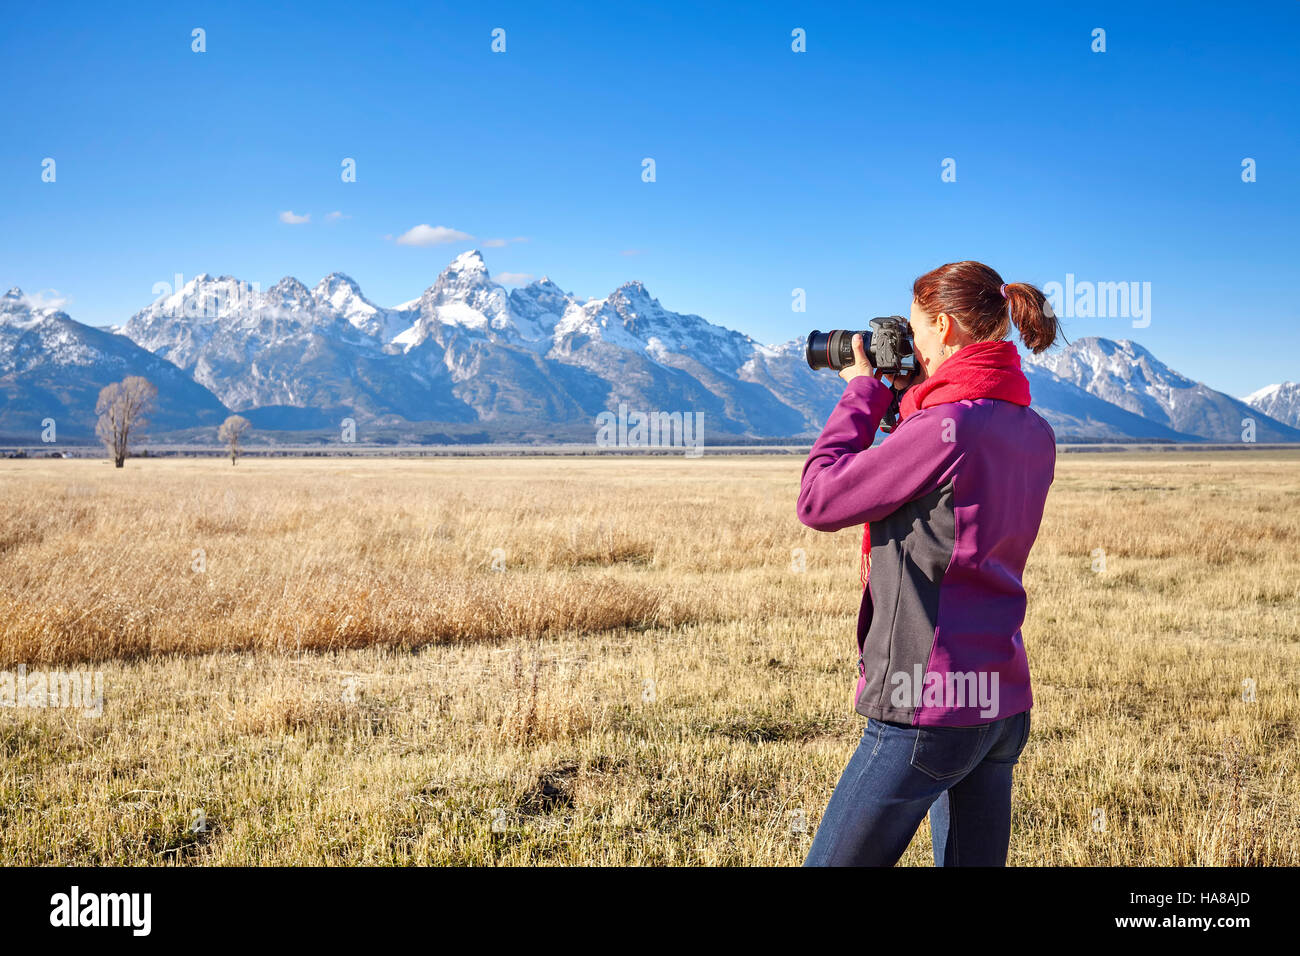 Female fit hiker taking pictures with DSLR camera in the Grand Teton National Park, Wyoming, USA. - Stock Image